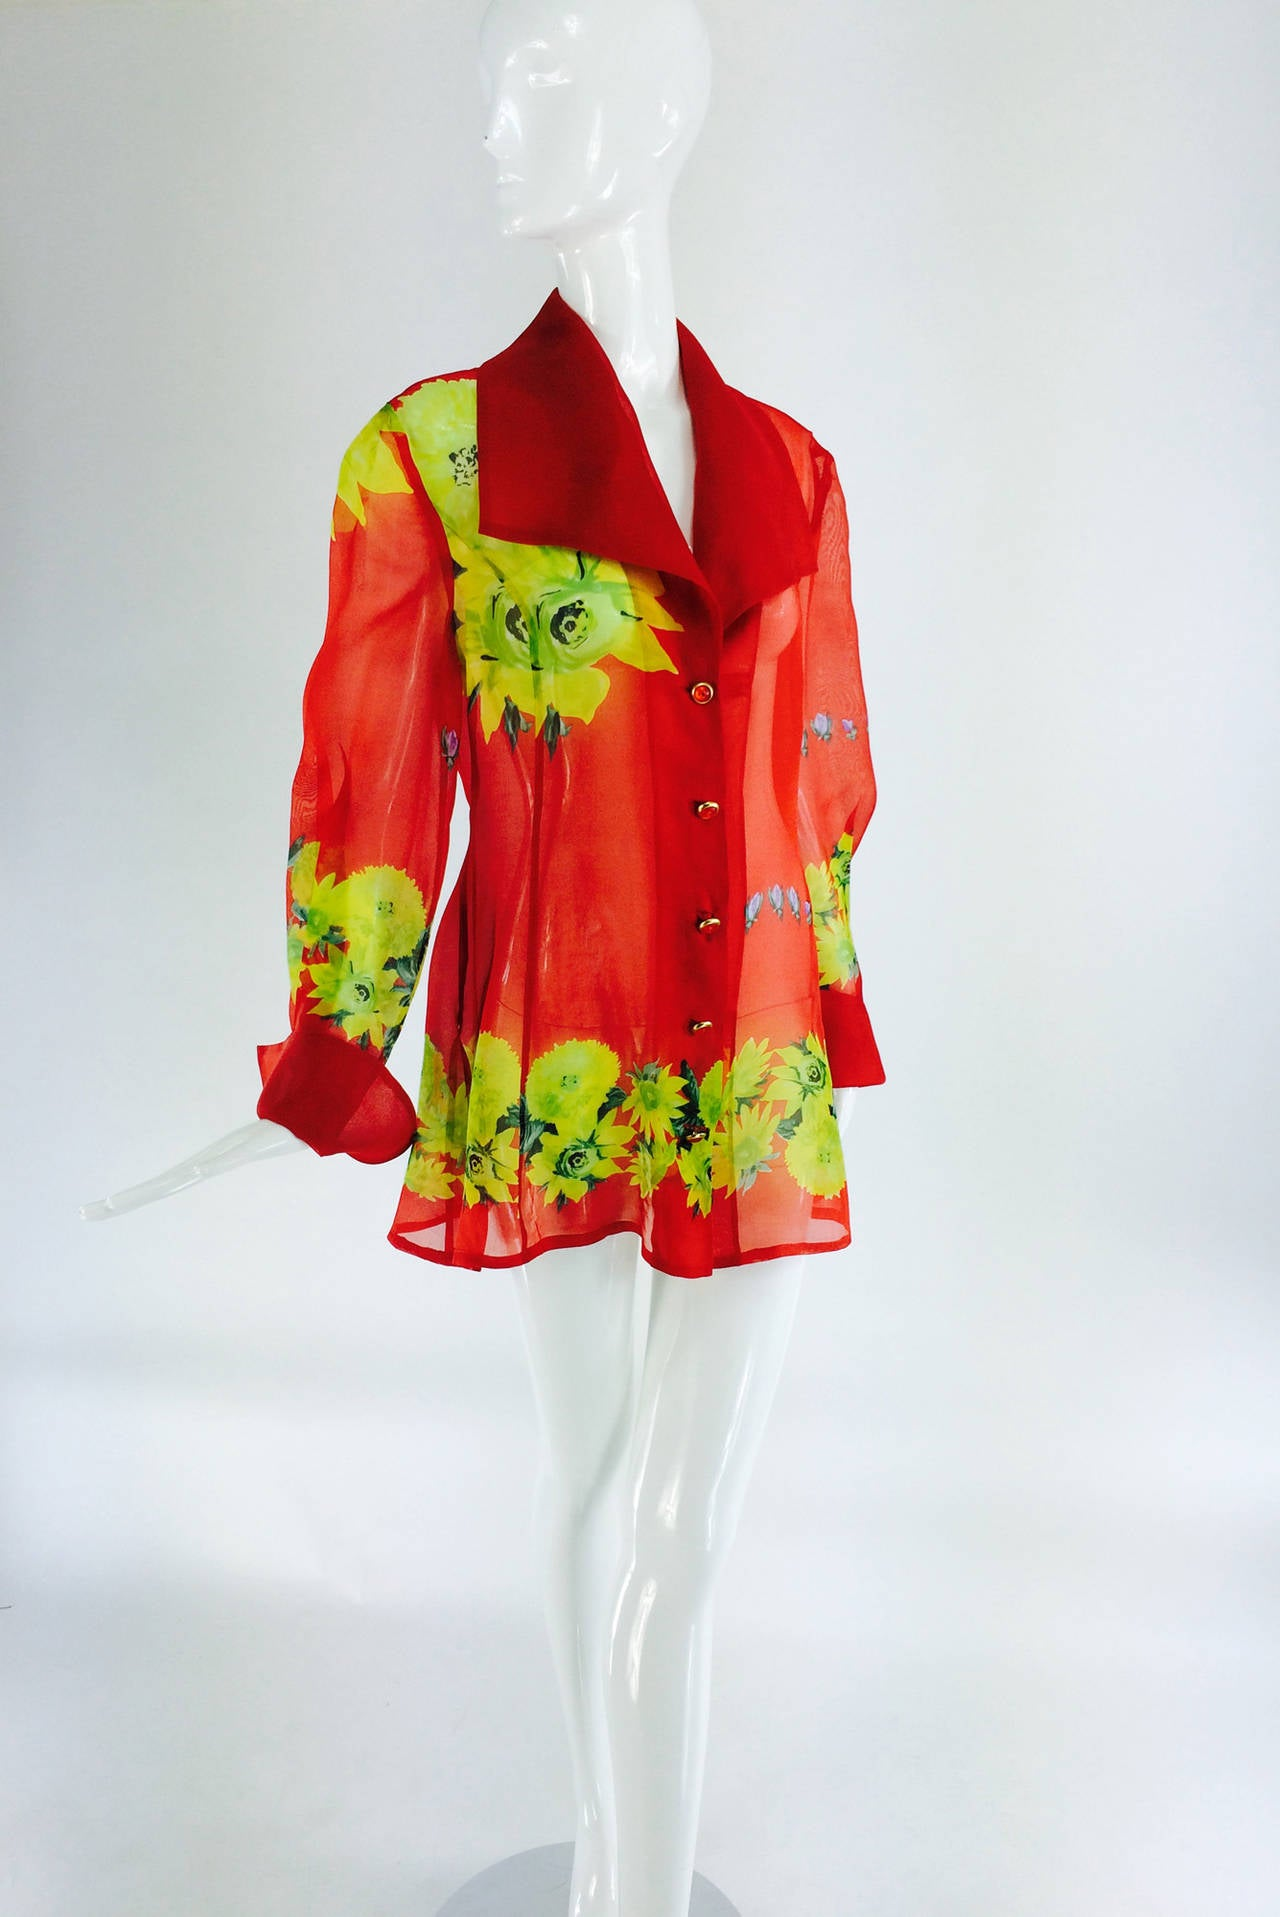 Christian Llinares France floral organza blouse 1980s...Tomato red ground with large floral print...Blouse closes at the front with red and gold buttons, wide collar, fitted through the waist and flaring at the hip, center back and side hem vents,